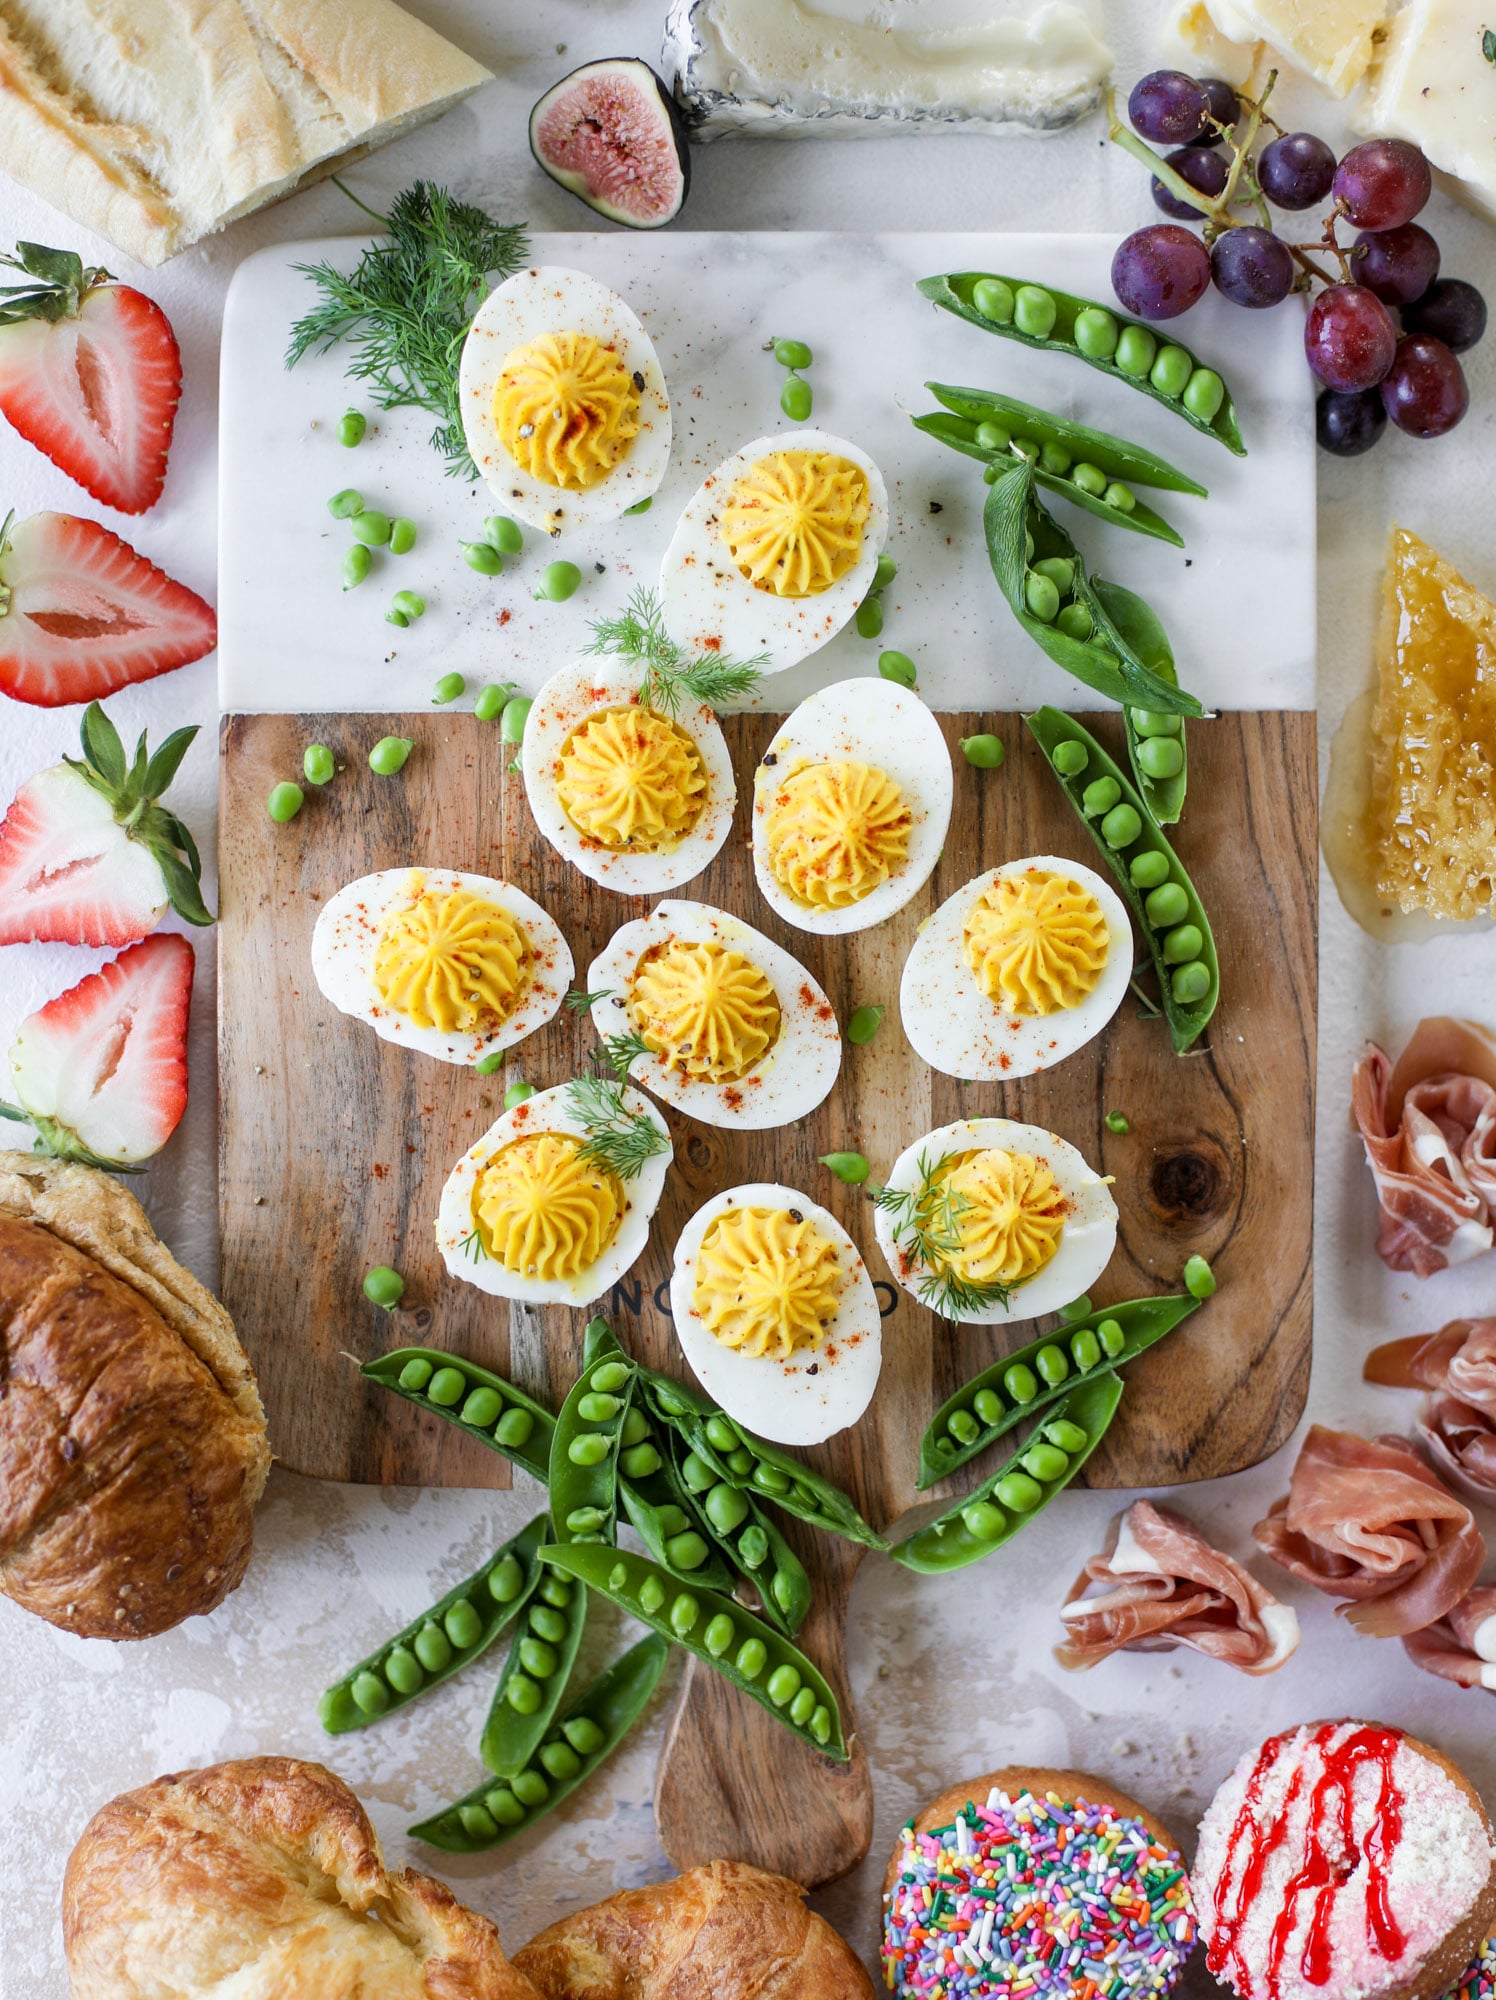 The highlight of this Easter brunch board are the deviled eggs and soft boiled eggs! Add some avocado toast, donuts and bloody marys and you've arrived. I howsweeteats.com #brunch #board